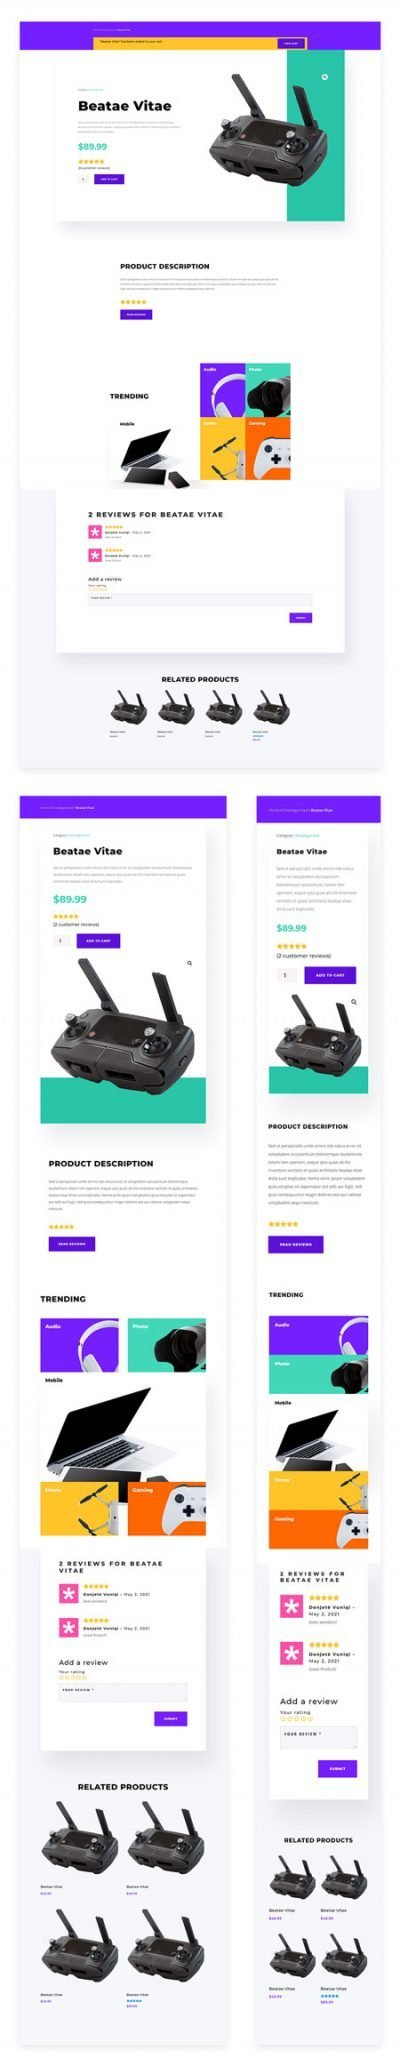 Electronics Store Product Page Template